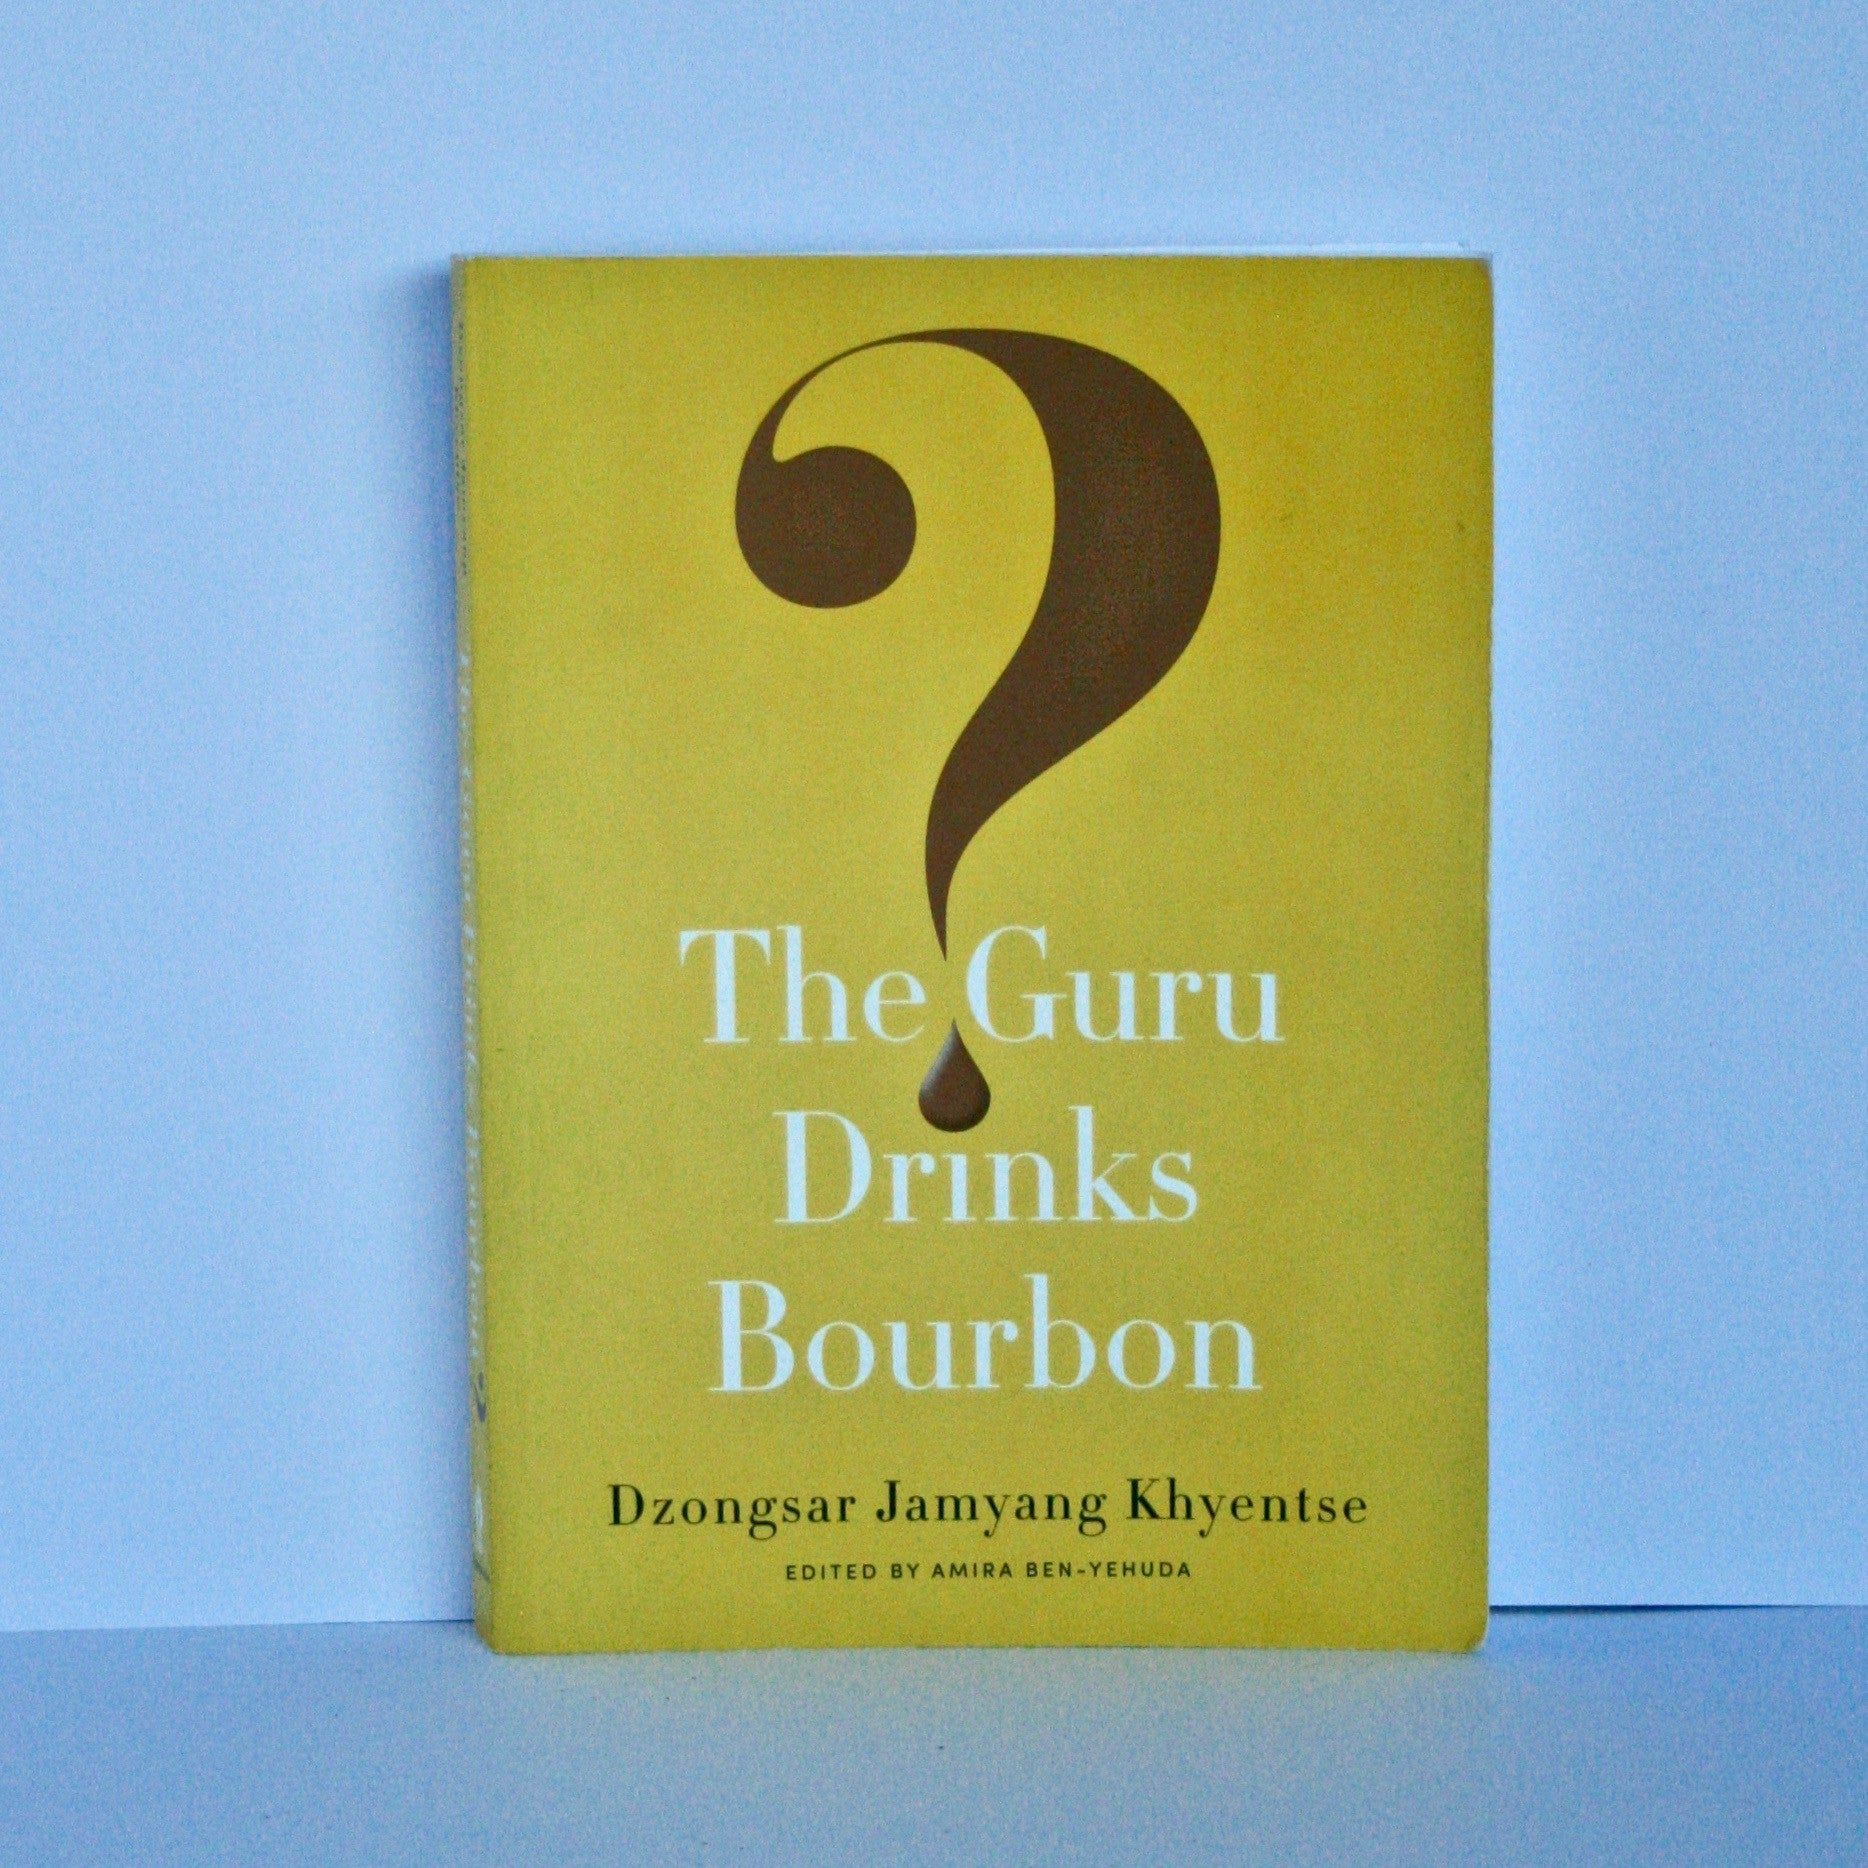 Guru Drinks Bourbon by Dzongsar Jamyang Khyentse